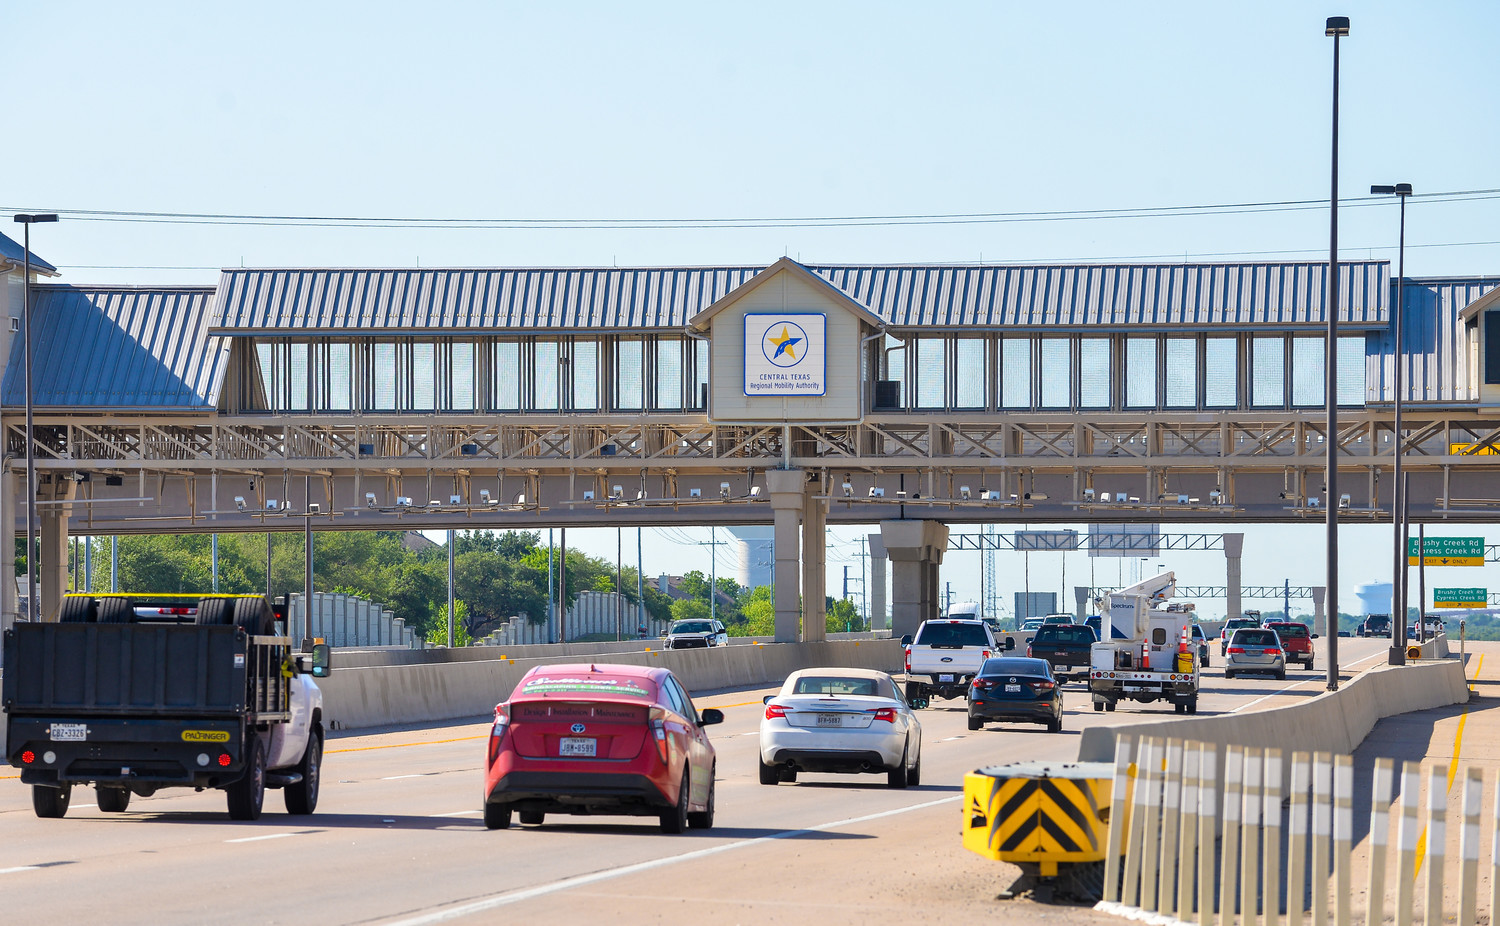 The Central Texas Regional Mobility Authority is seeking to extend the tolled portion of 183A north from Leander to Liberty Hill and to add variable toll 'express lanes' between the Lakeline Mall area and the Arboretum in Austin.